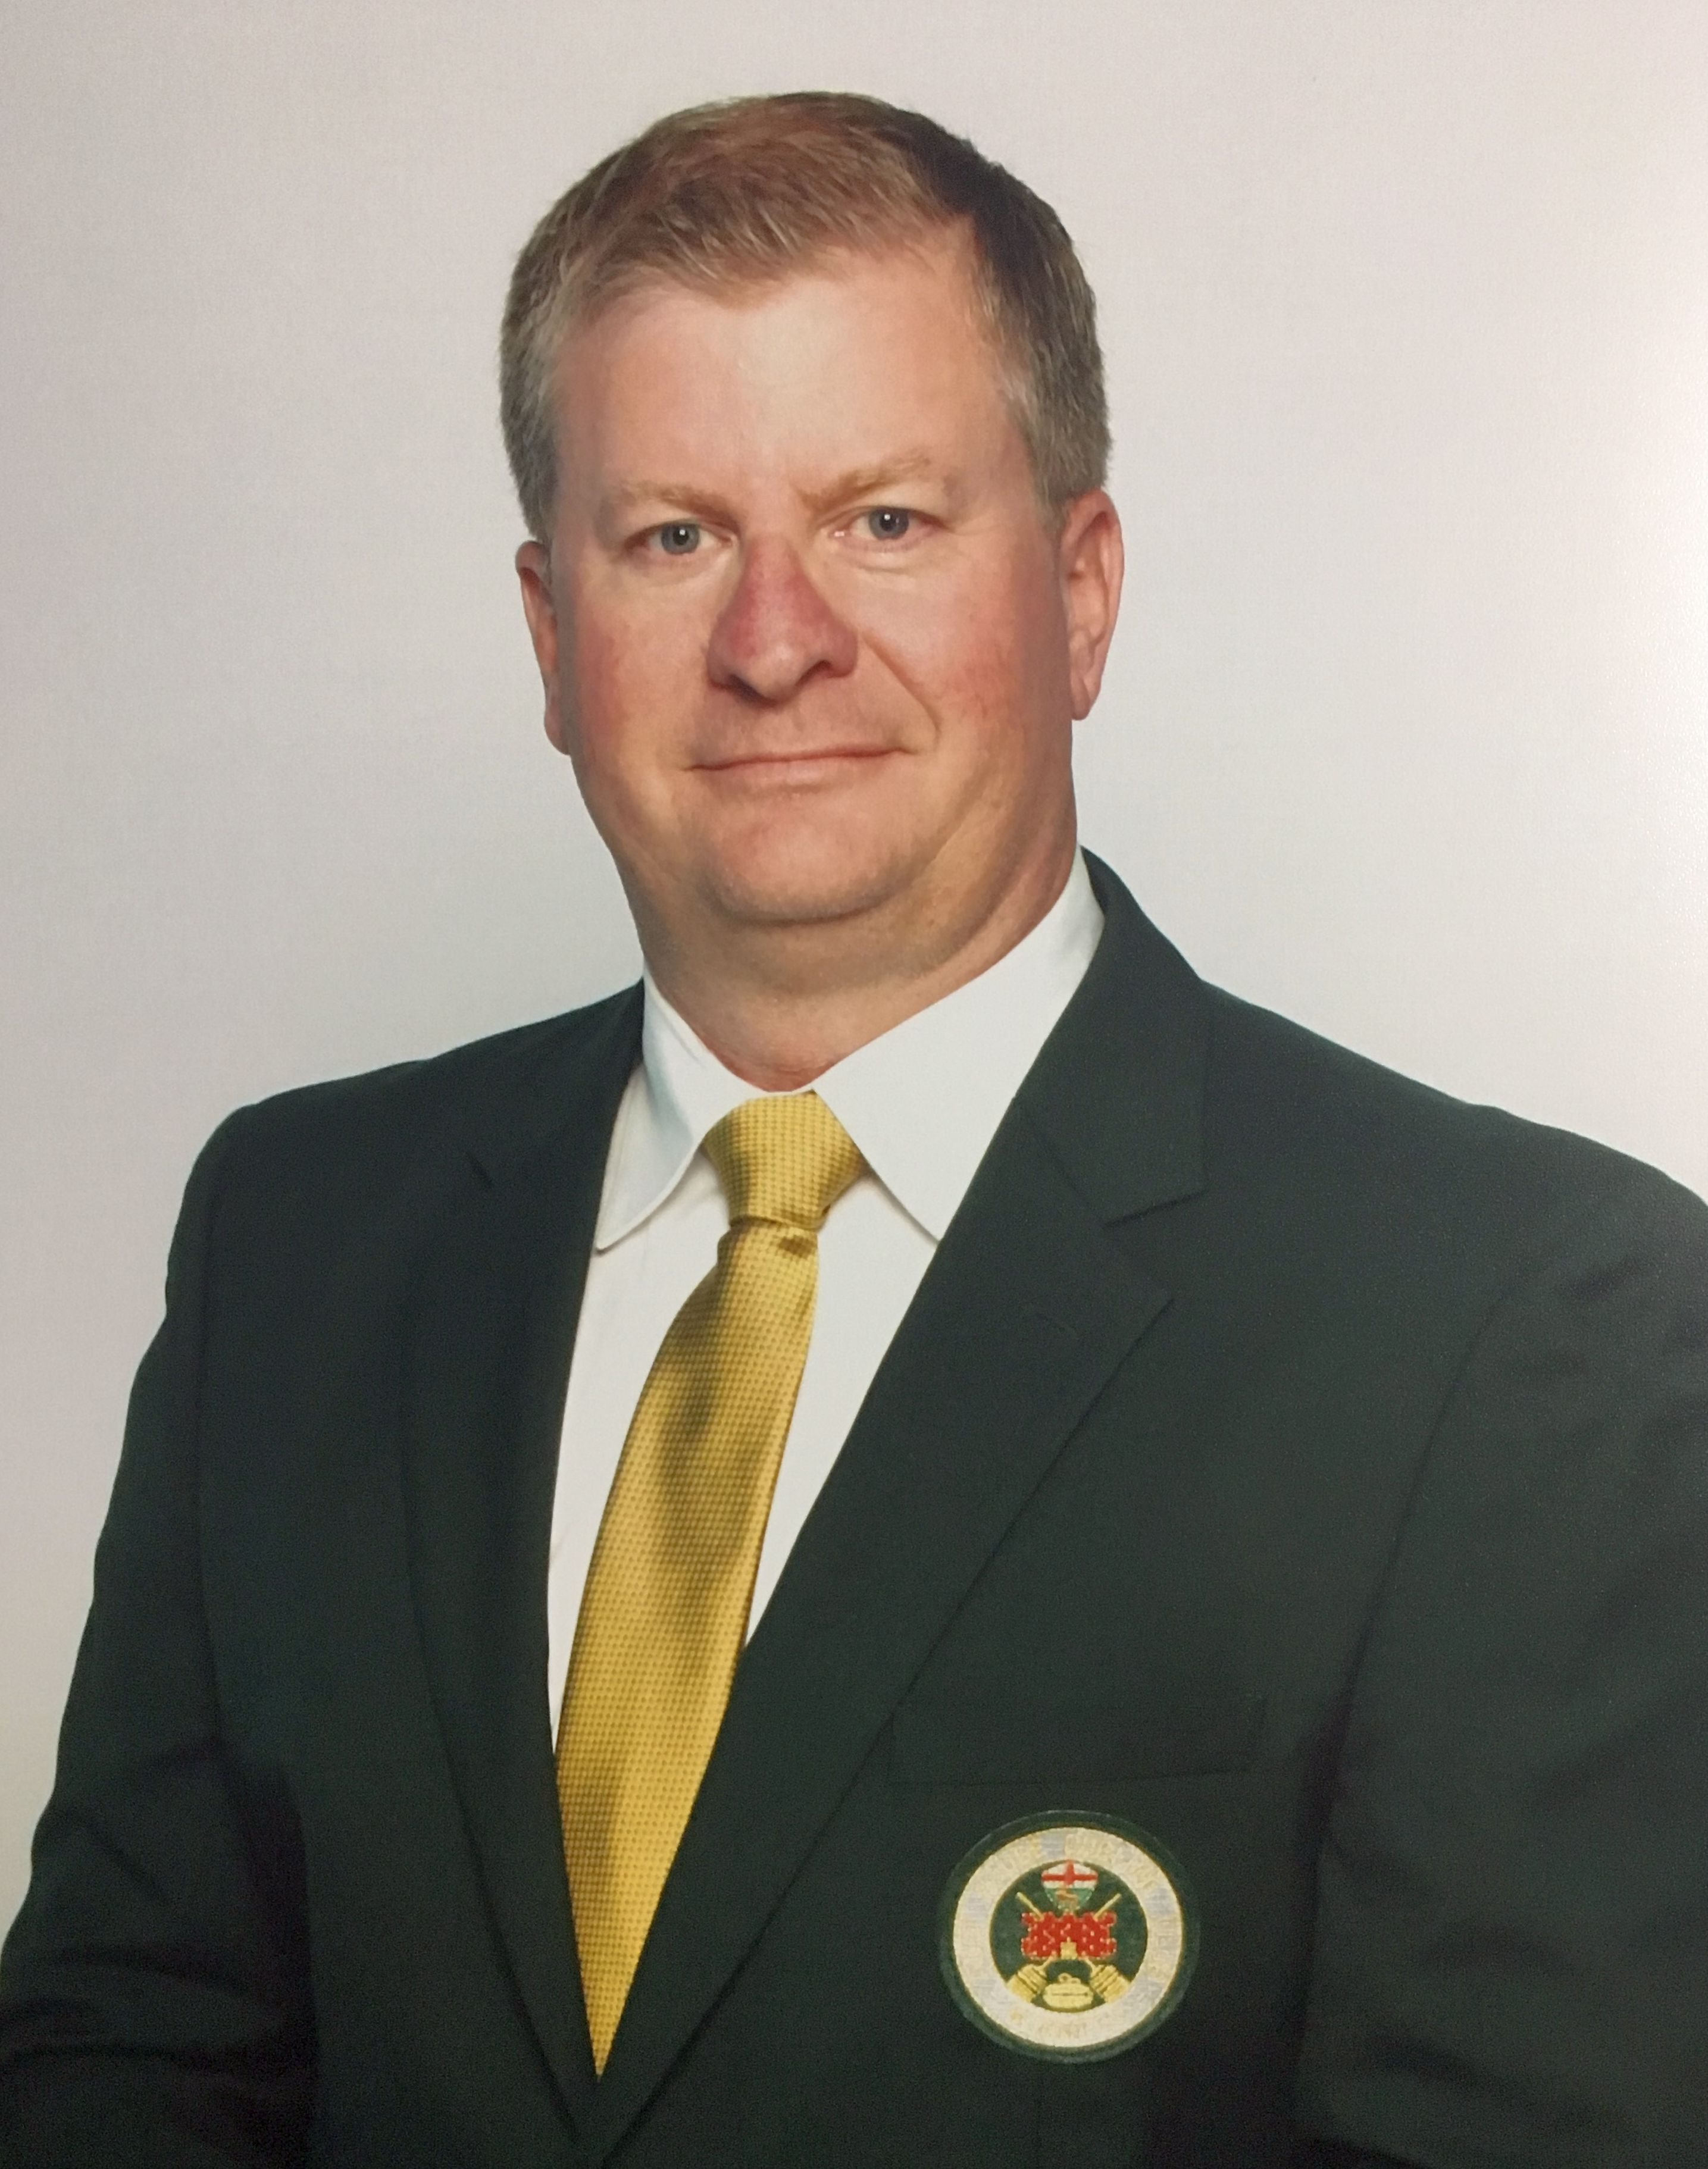 President Keith Johnston